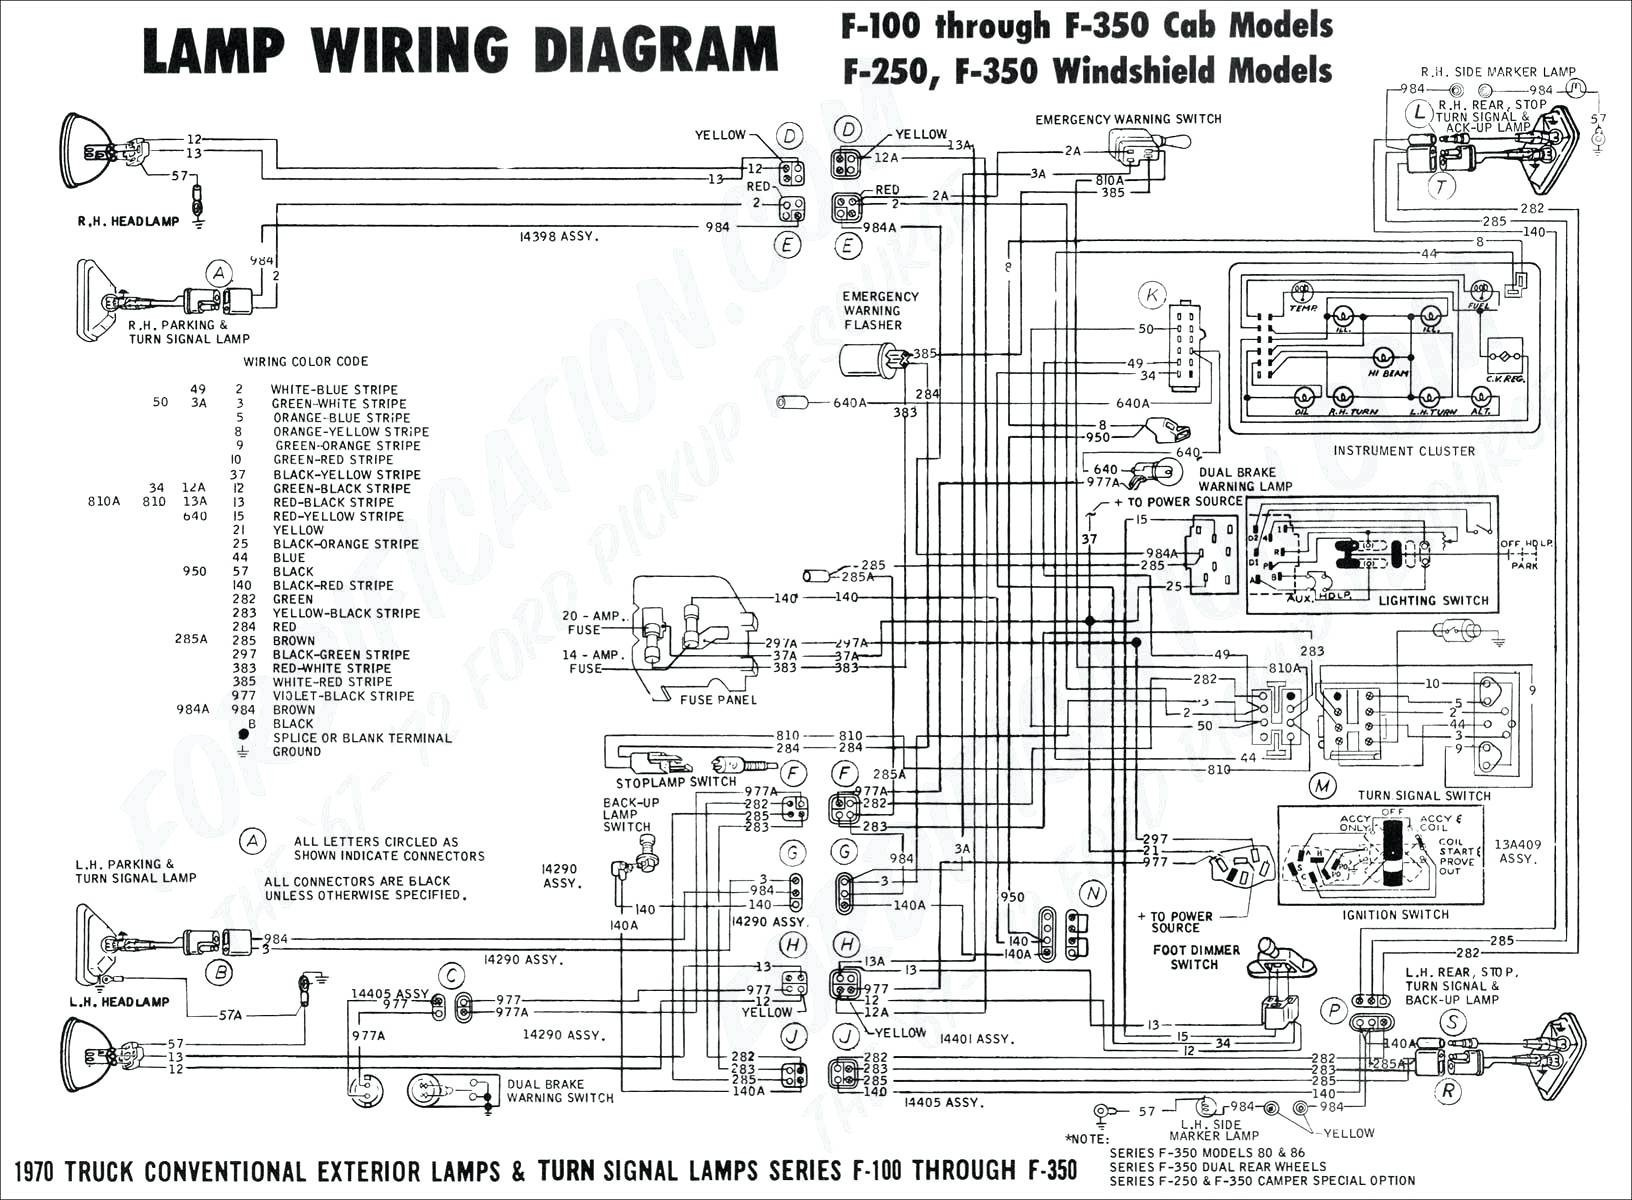 Fuel Line Diagram Chevy Truck 1995 F150 Fuel Line Diagram Another Blog About Wiring Diagram • Of Fuel Line Diagram Chevy Truck